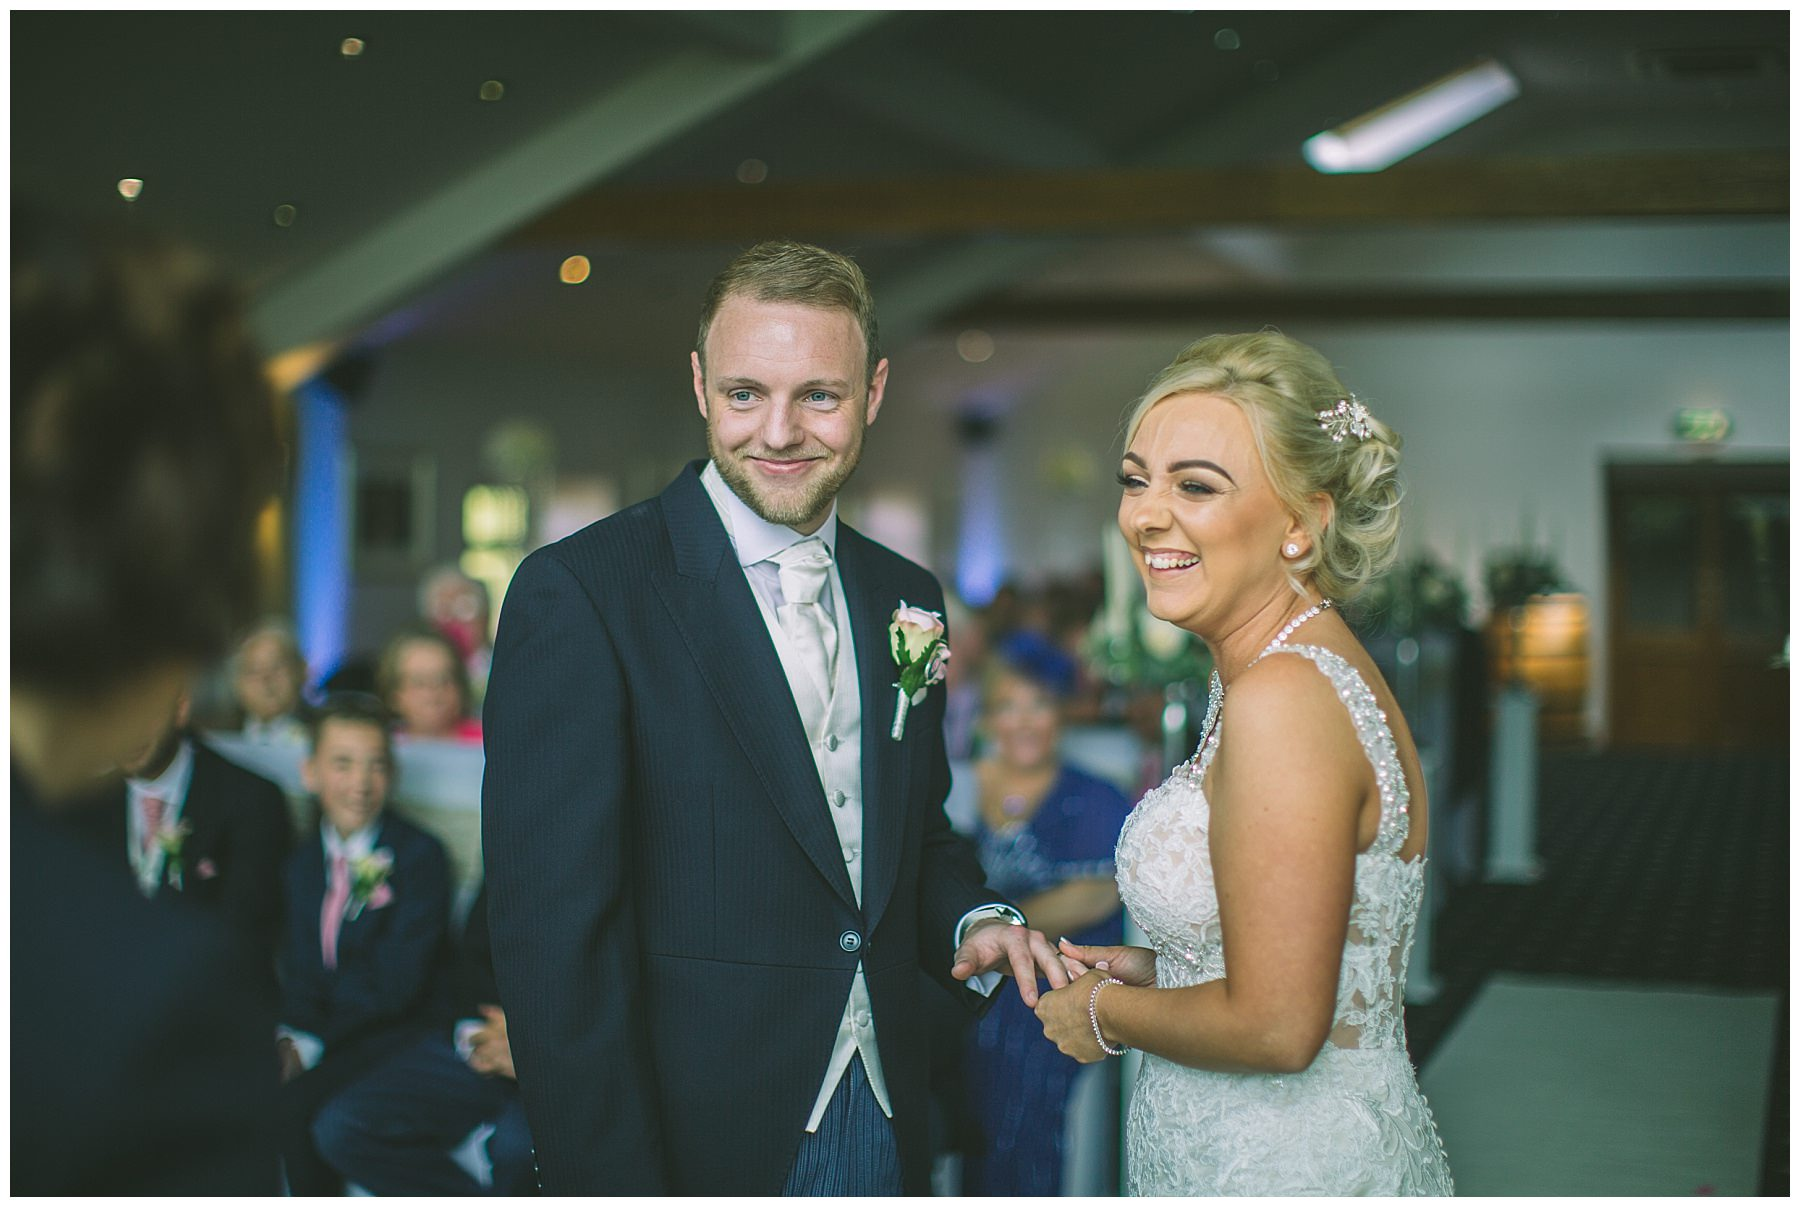 Bride and Groom smile during wedding ceremony in Ramsbottom